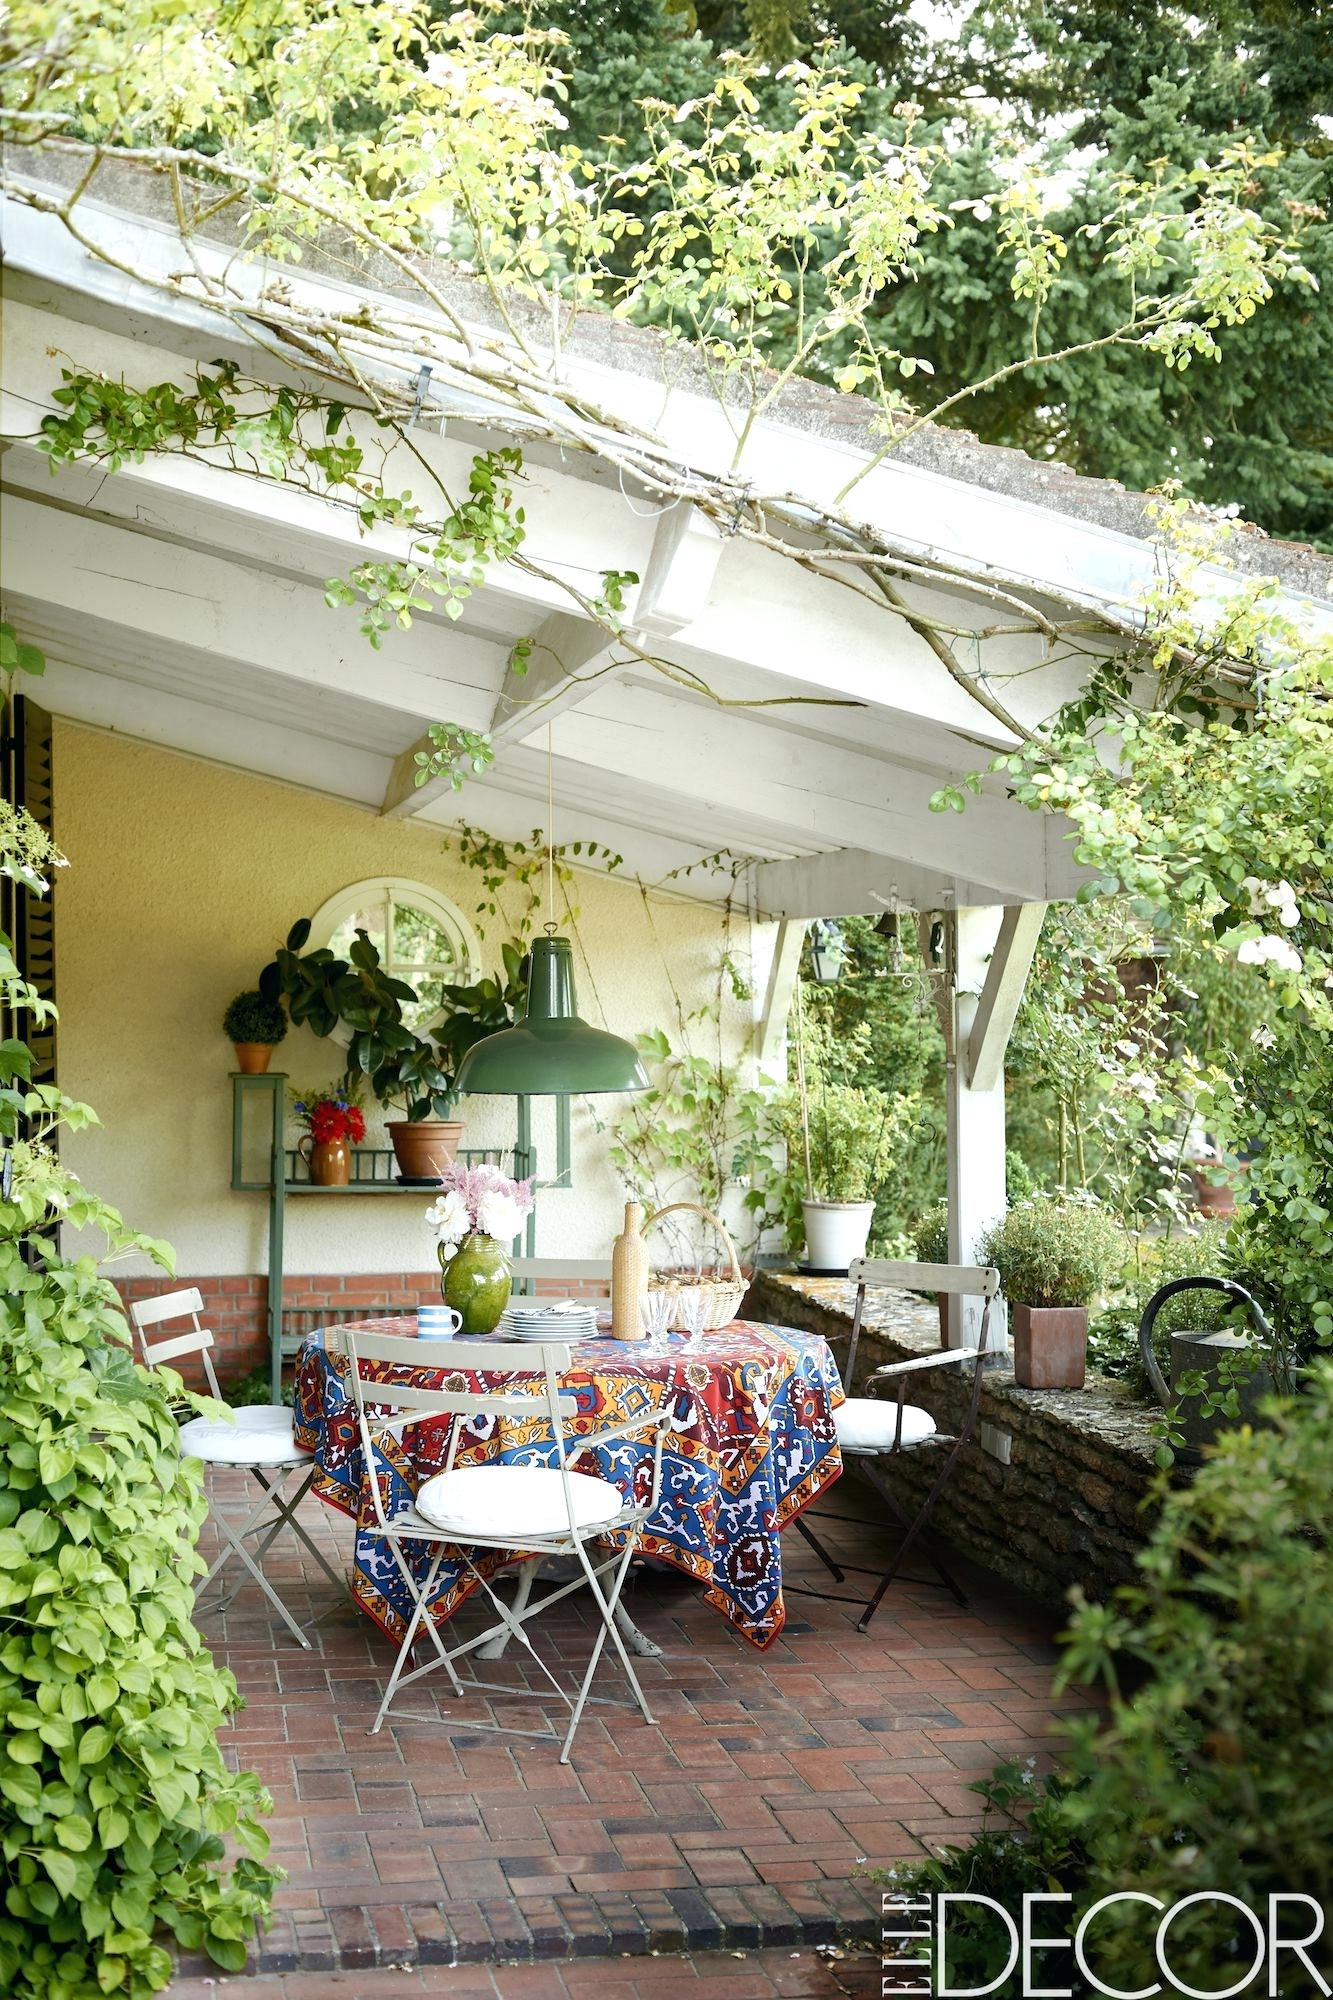 Patio Ideas For Small Yards Delightful Secluded Patio Backyard within Backyard Design Ideas For Small Yards